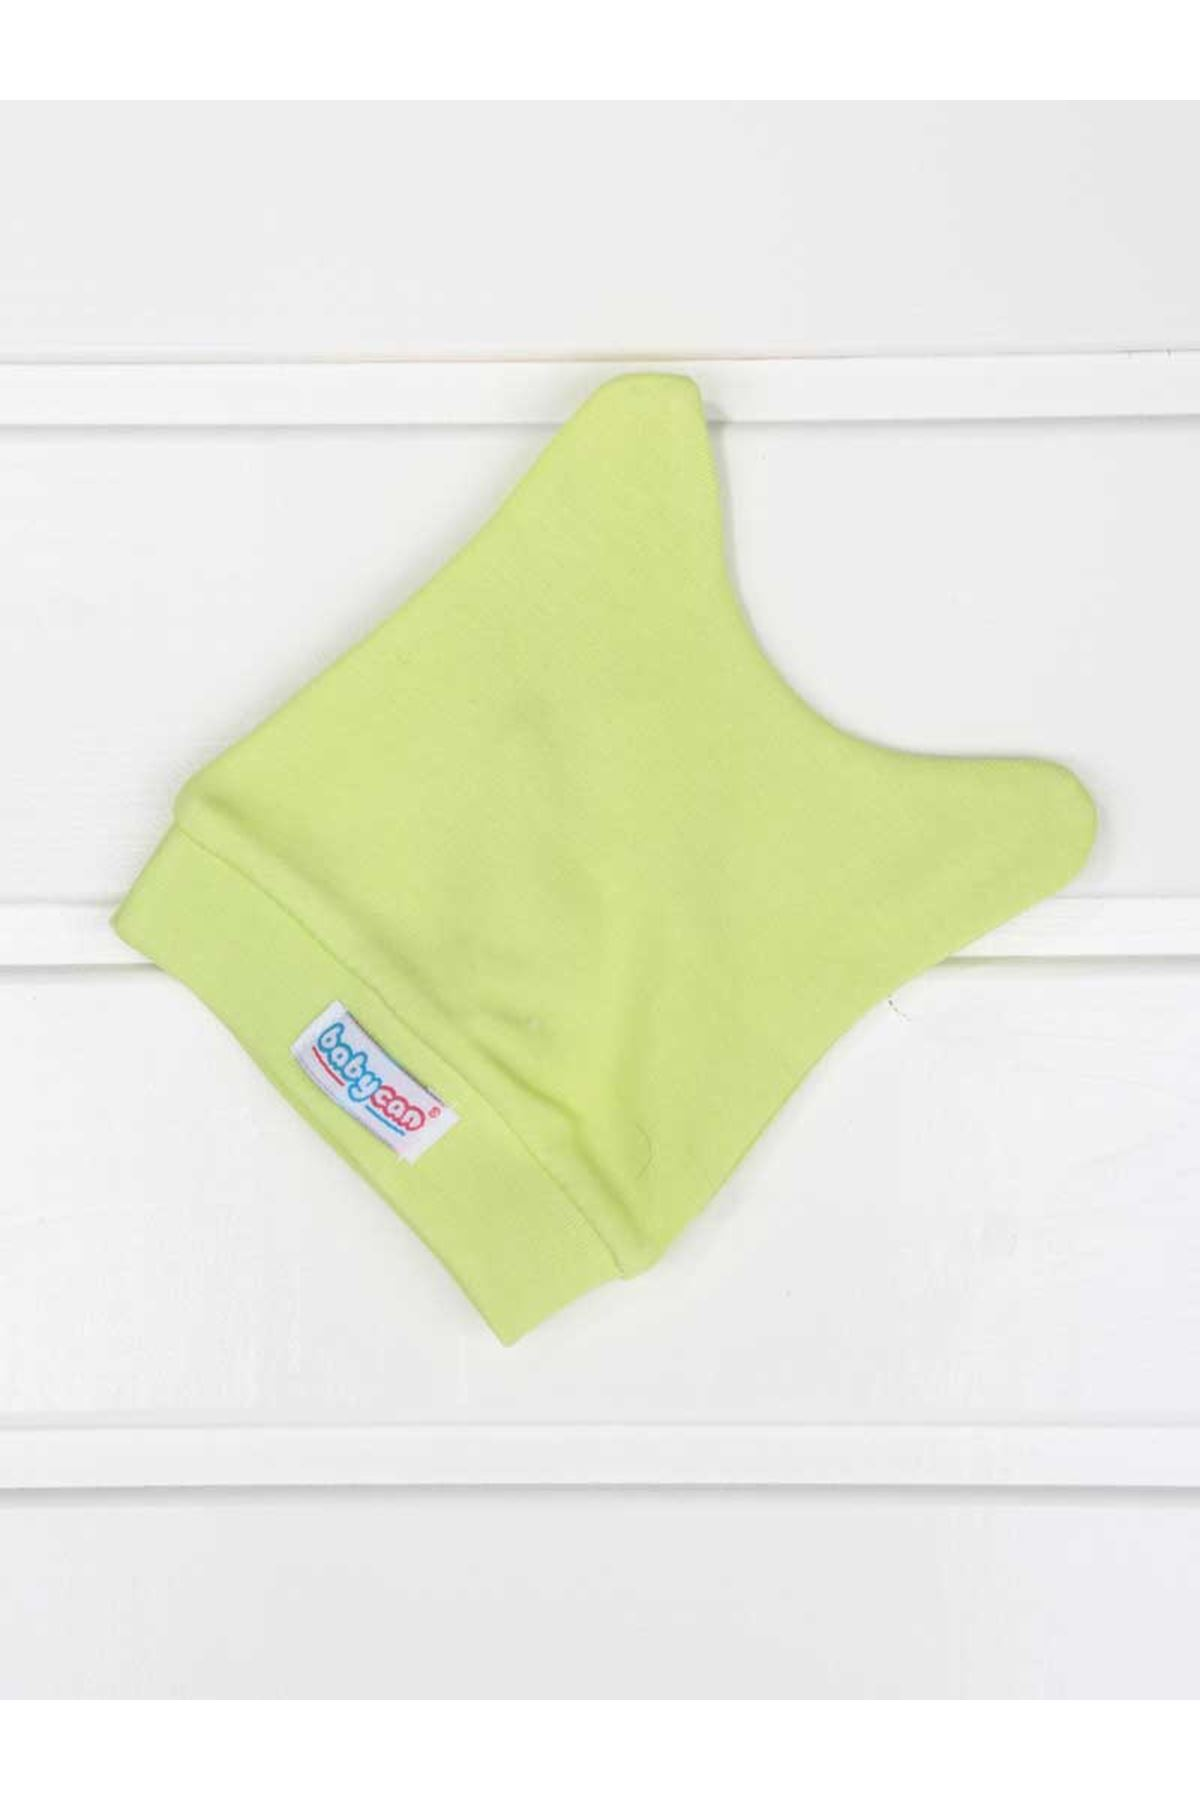 Green Swaddle Gloved Male Baby 3 Pcs The Zibin team